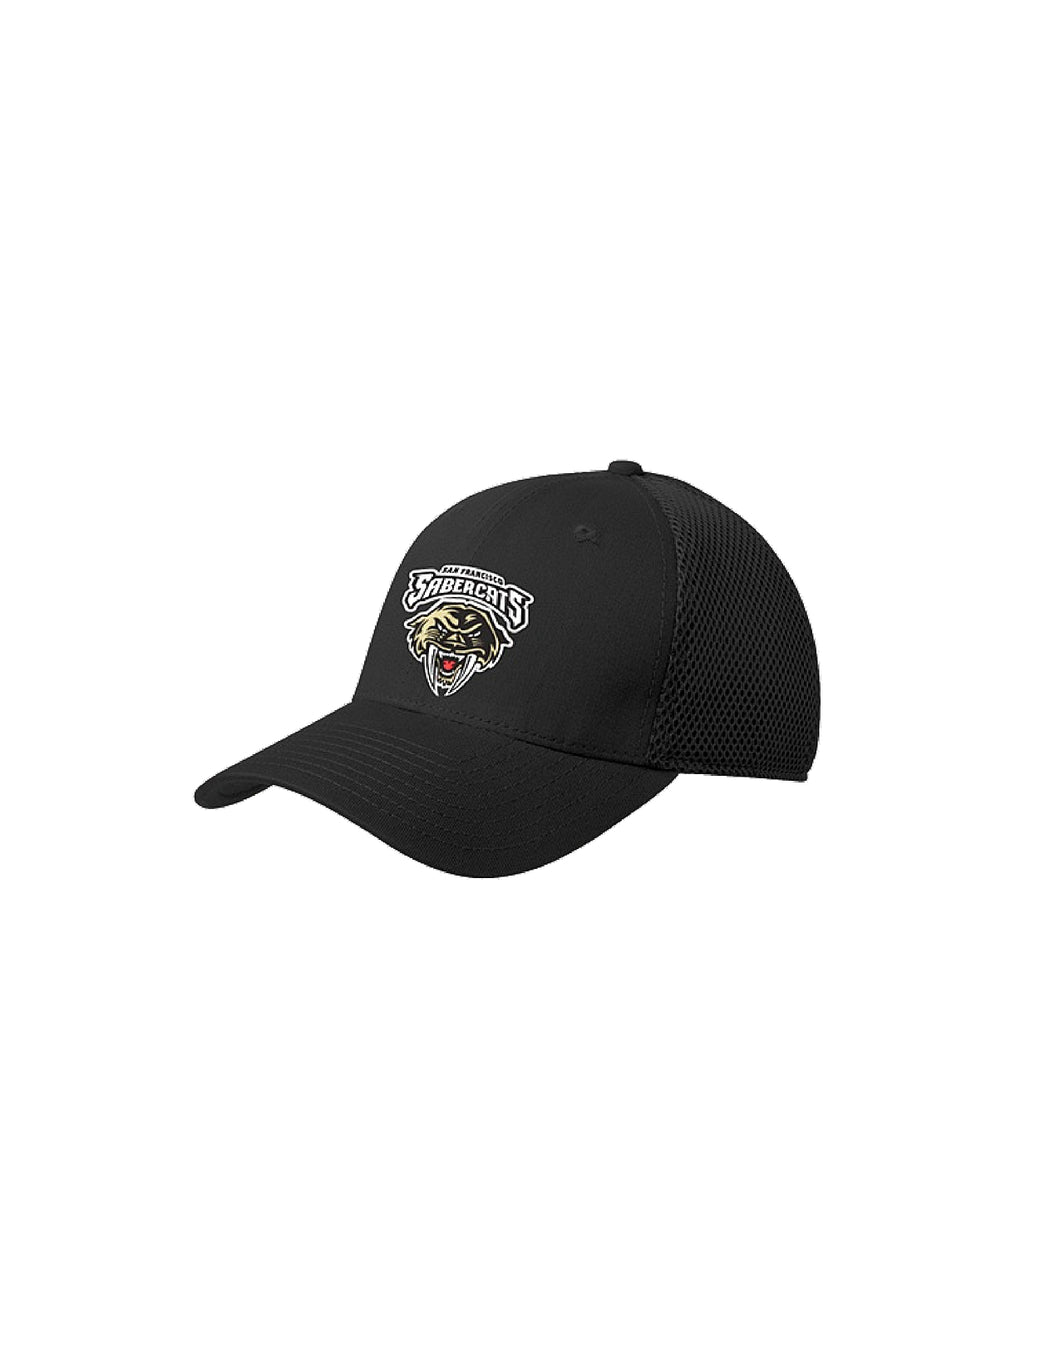 Sabercats New Era® - Stretch Mesh Cap with Embroidered Sabercats Logo (NE1020)